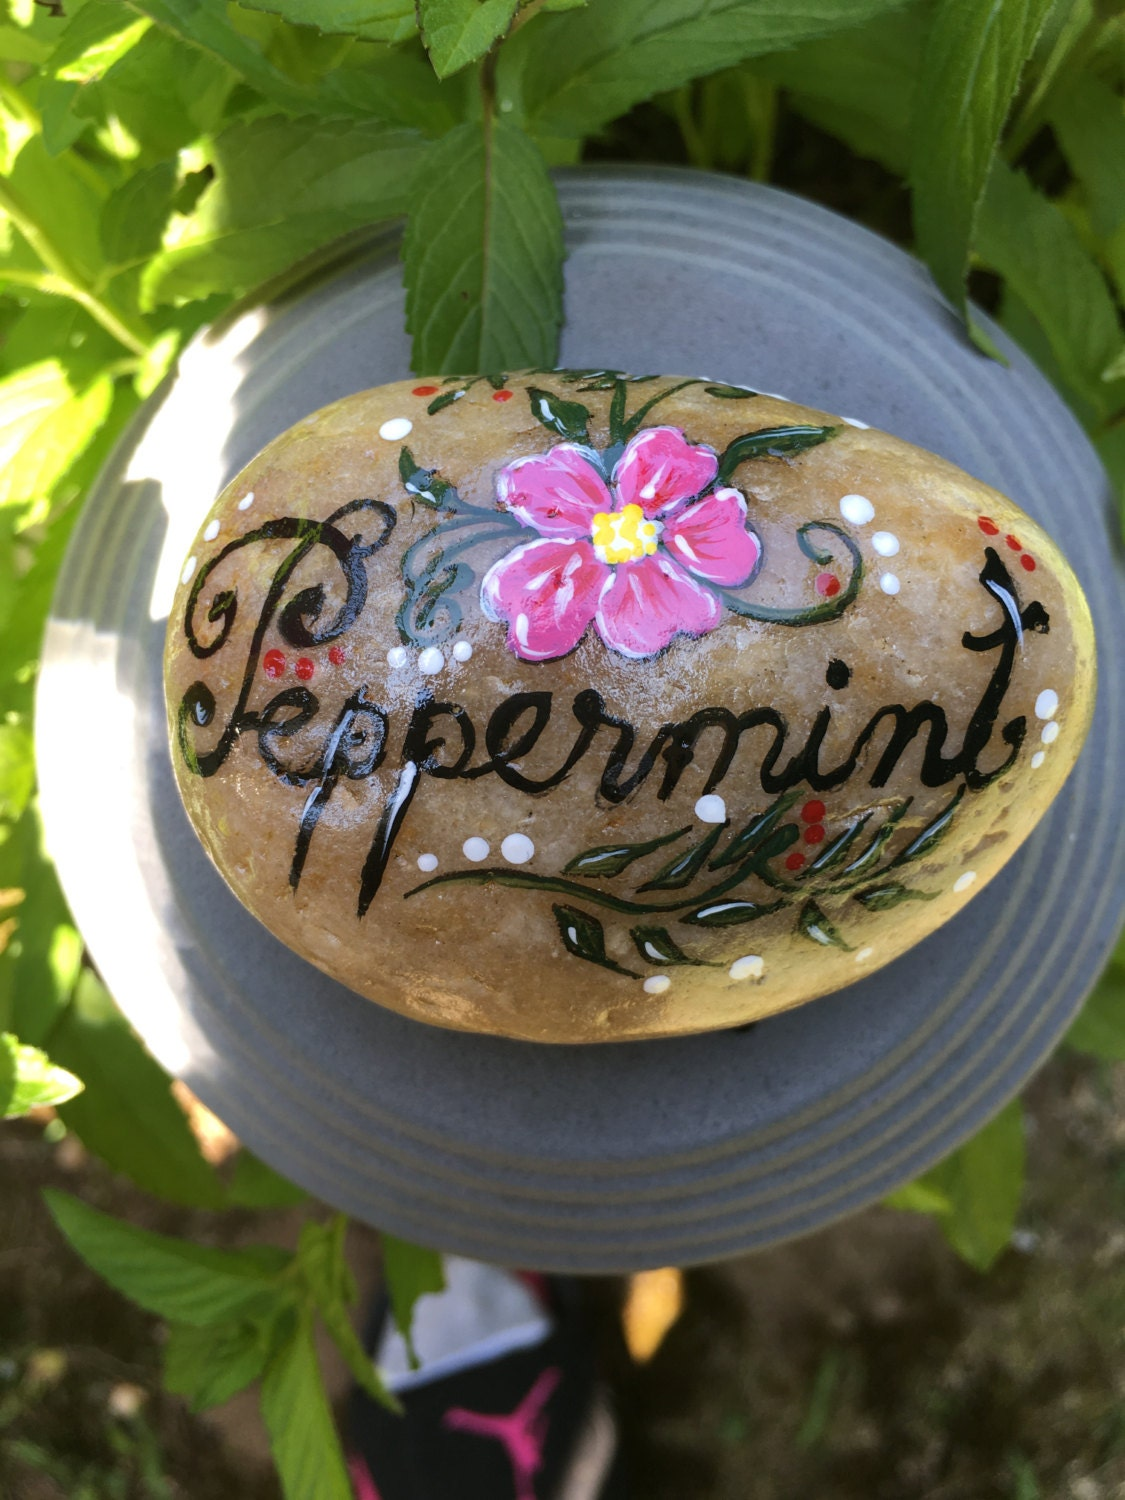 Hand painted stone peppermint garden stone stone art - Hand painted garden stones ...